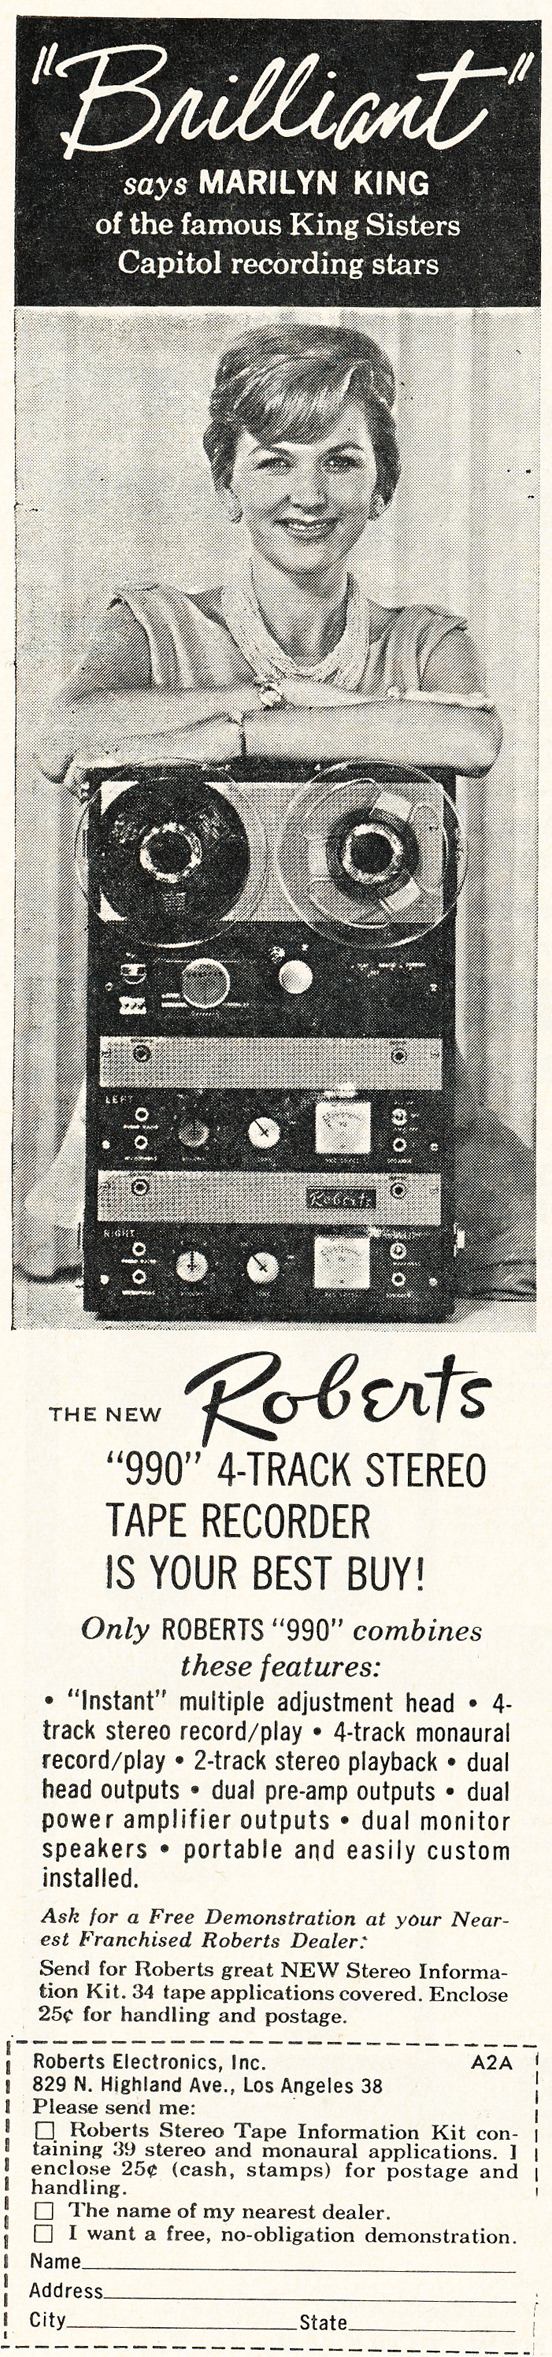 1961 ad for the Roberts 990 reel to reel tape recorder featuring Marilyn King in Phantom Productions' vintage recording collection